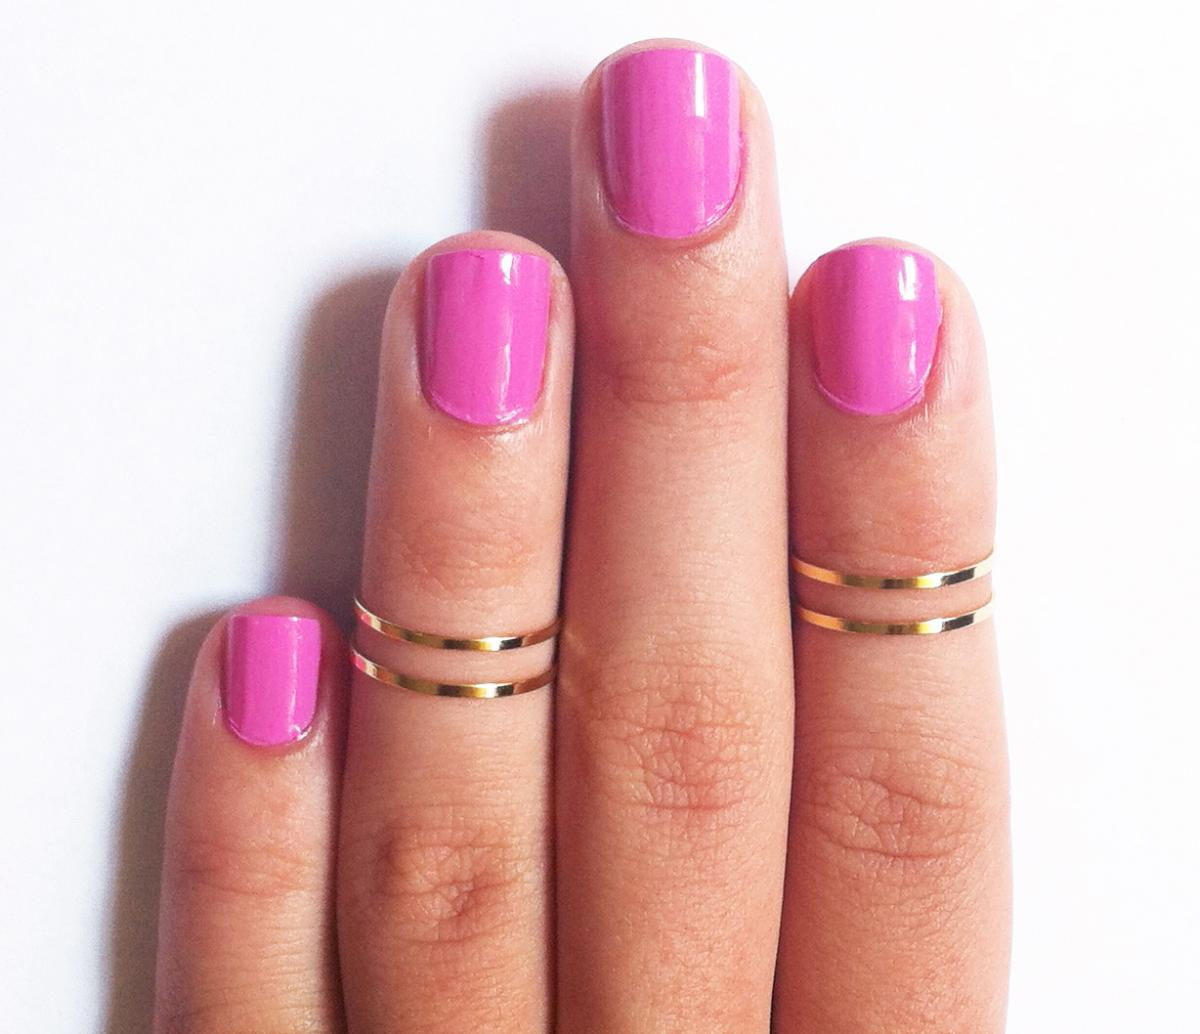 4 Thin Knuckle Rings - gold plated thin shiny bands - set of 4 stackable midi rings